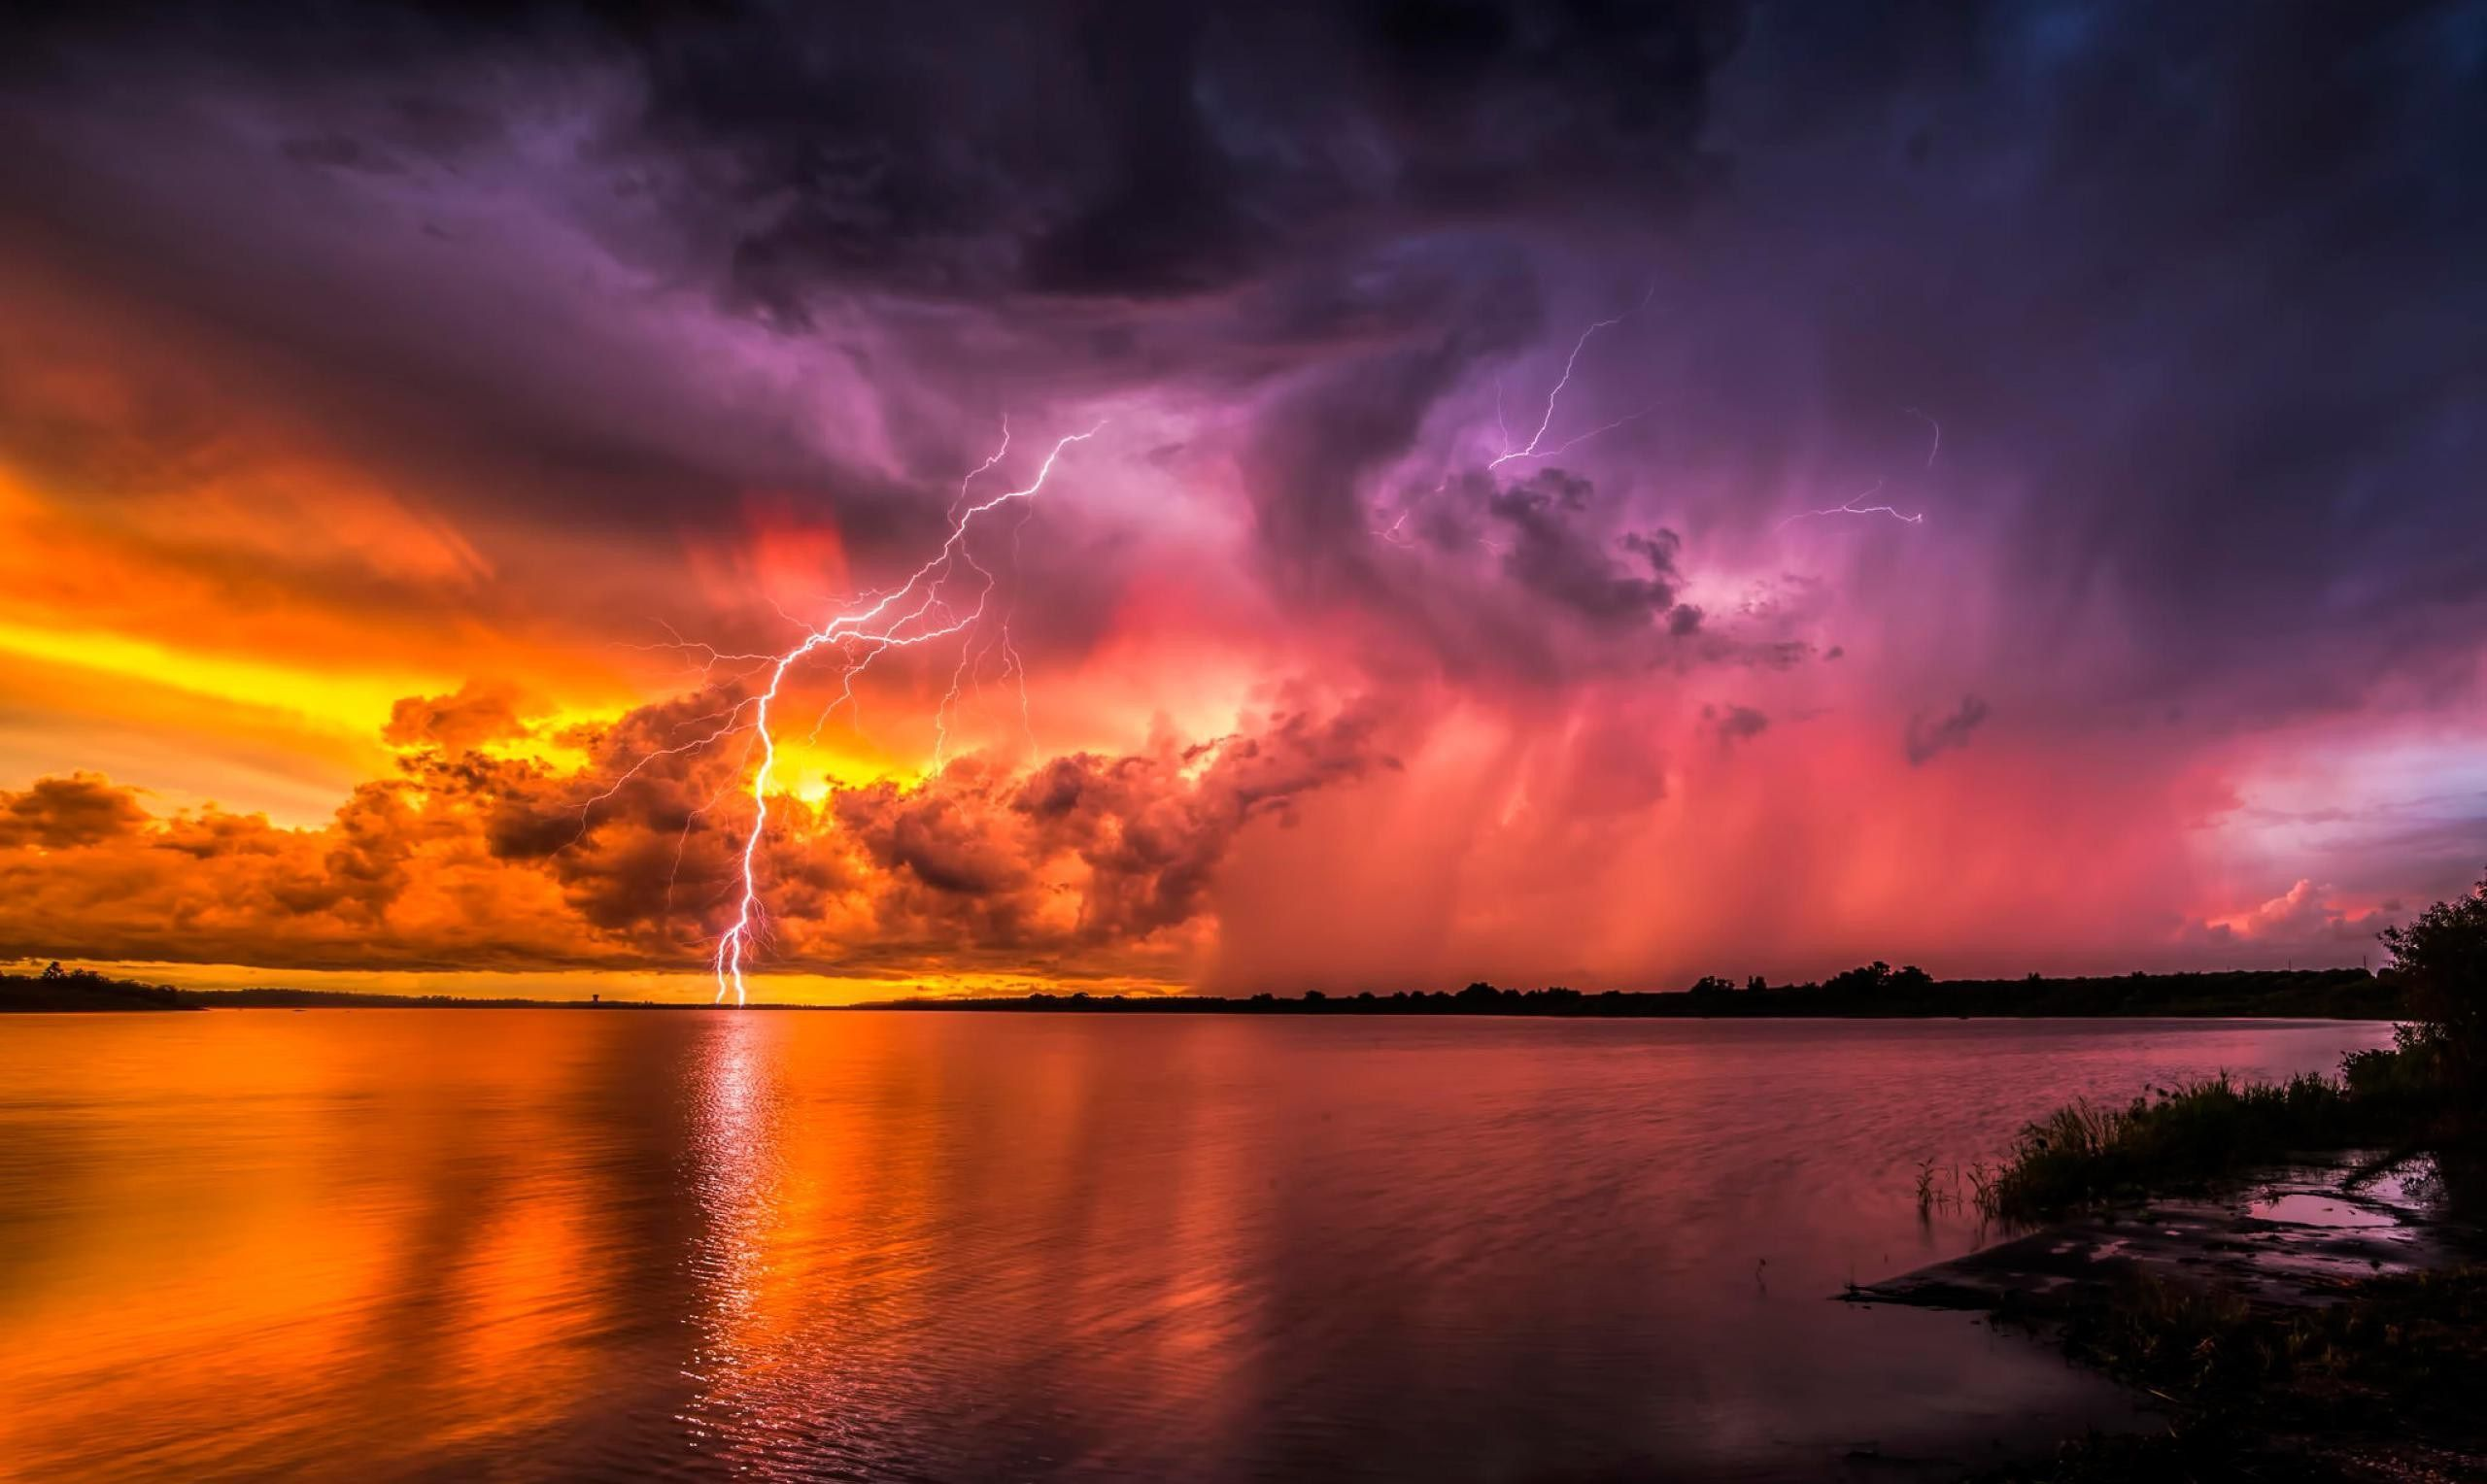 ☆ Thunderstorm with Lightnings ☆